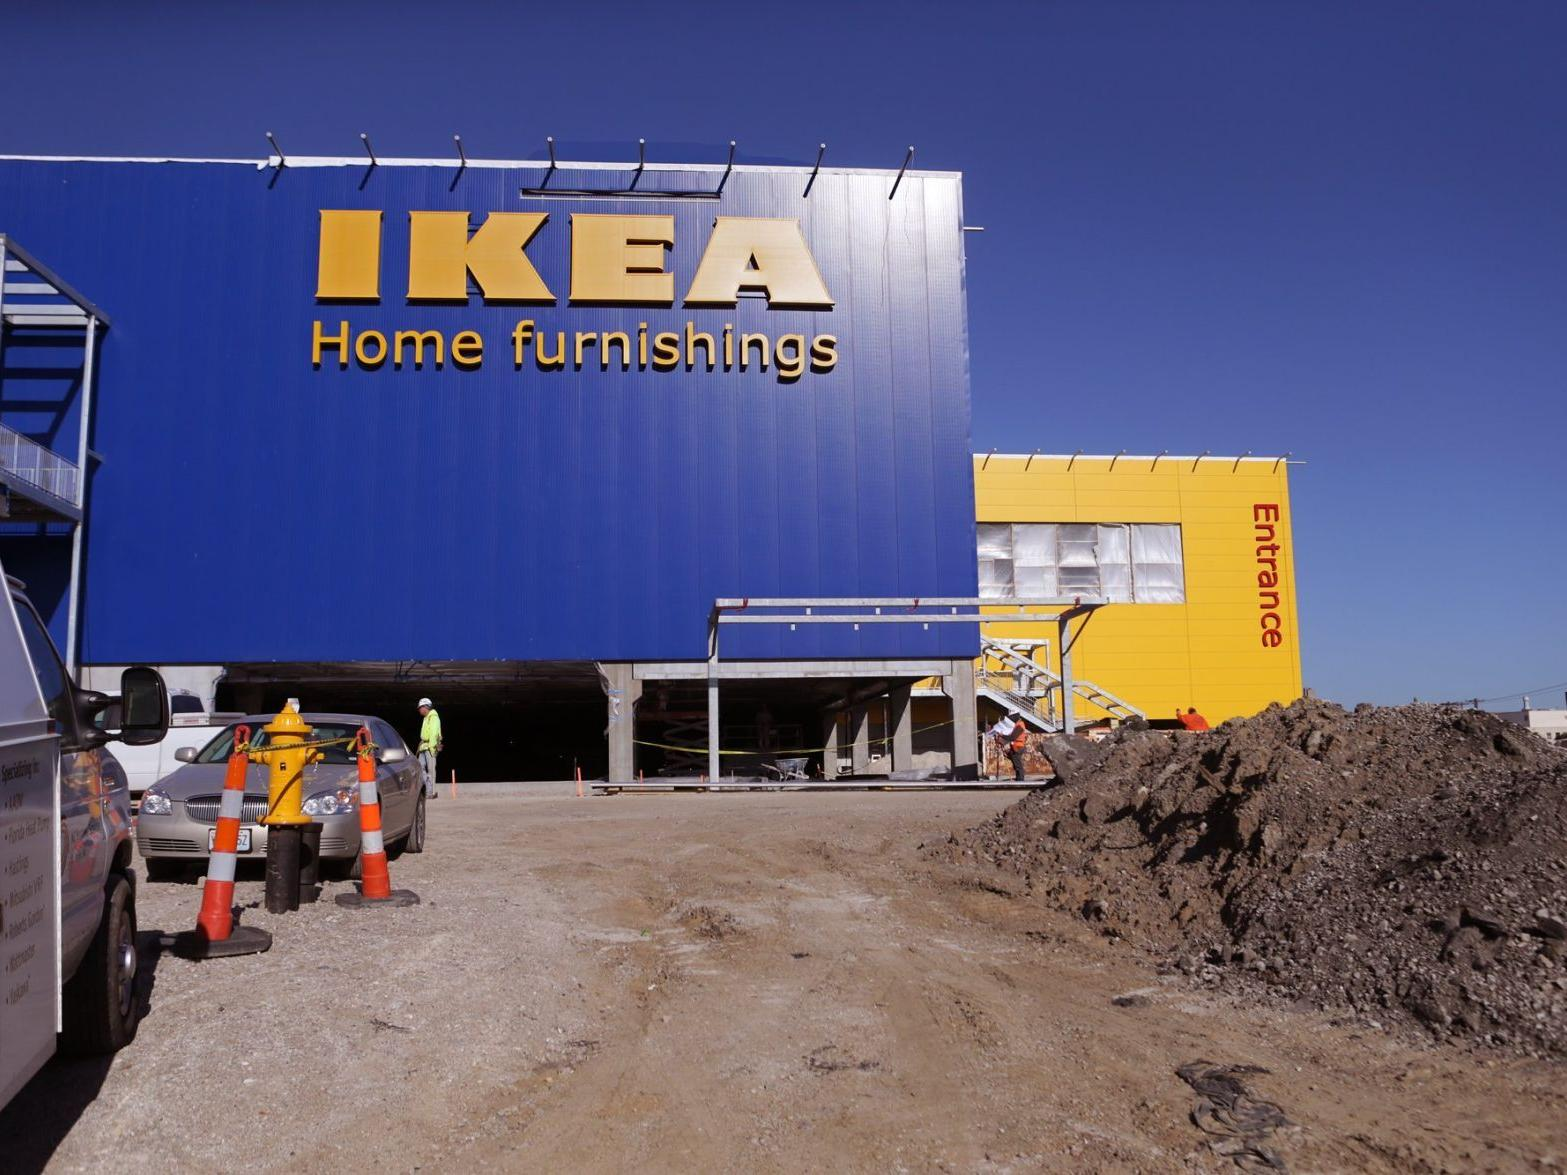 Ikea To Open St Louis Store On Sept 30 Local Business Stltoday Com